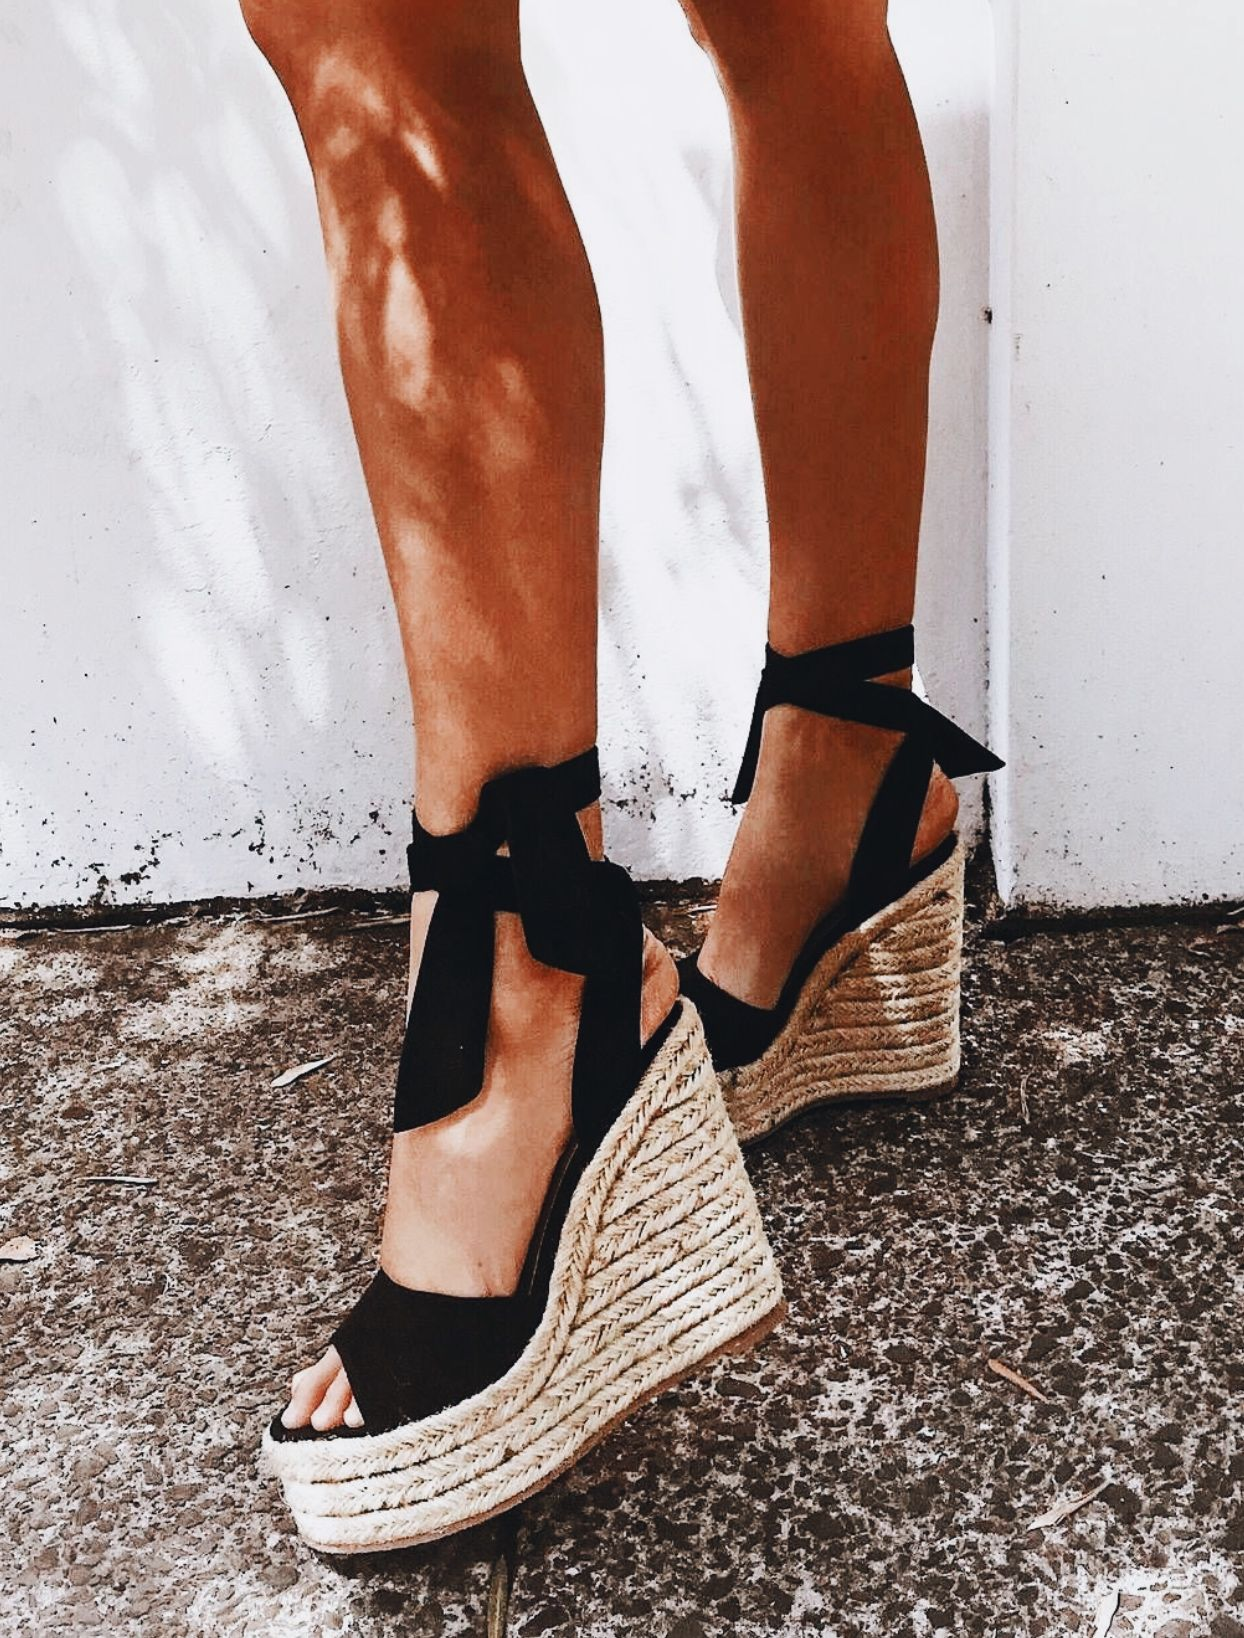 32da7596da29d audreygrace16 on pinterest & audrey_baenziger on insta love you loves!  Black Espadrilles Wedges,